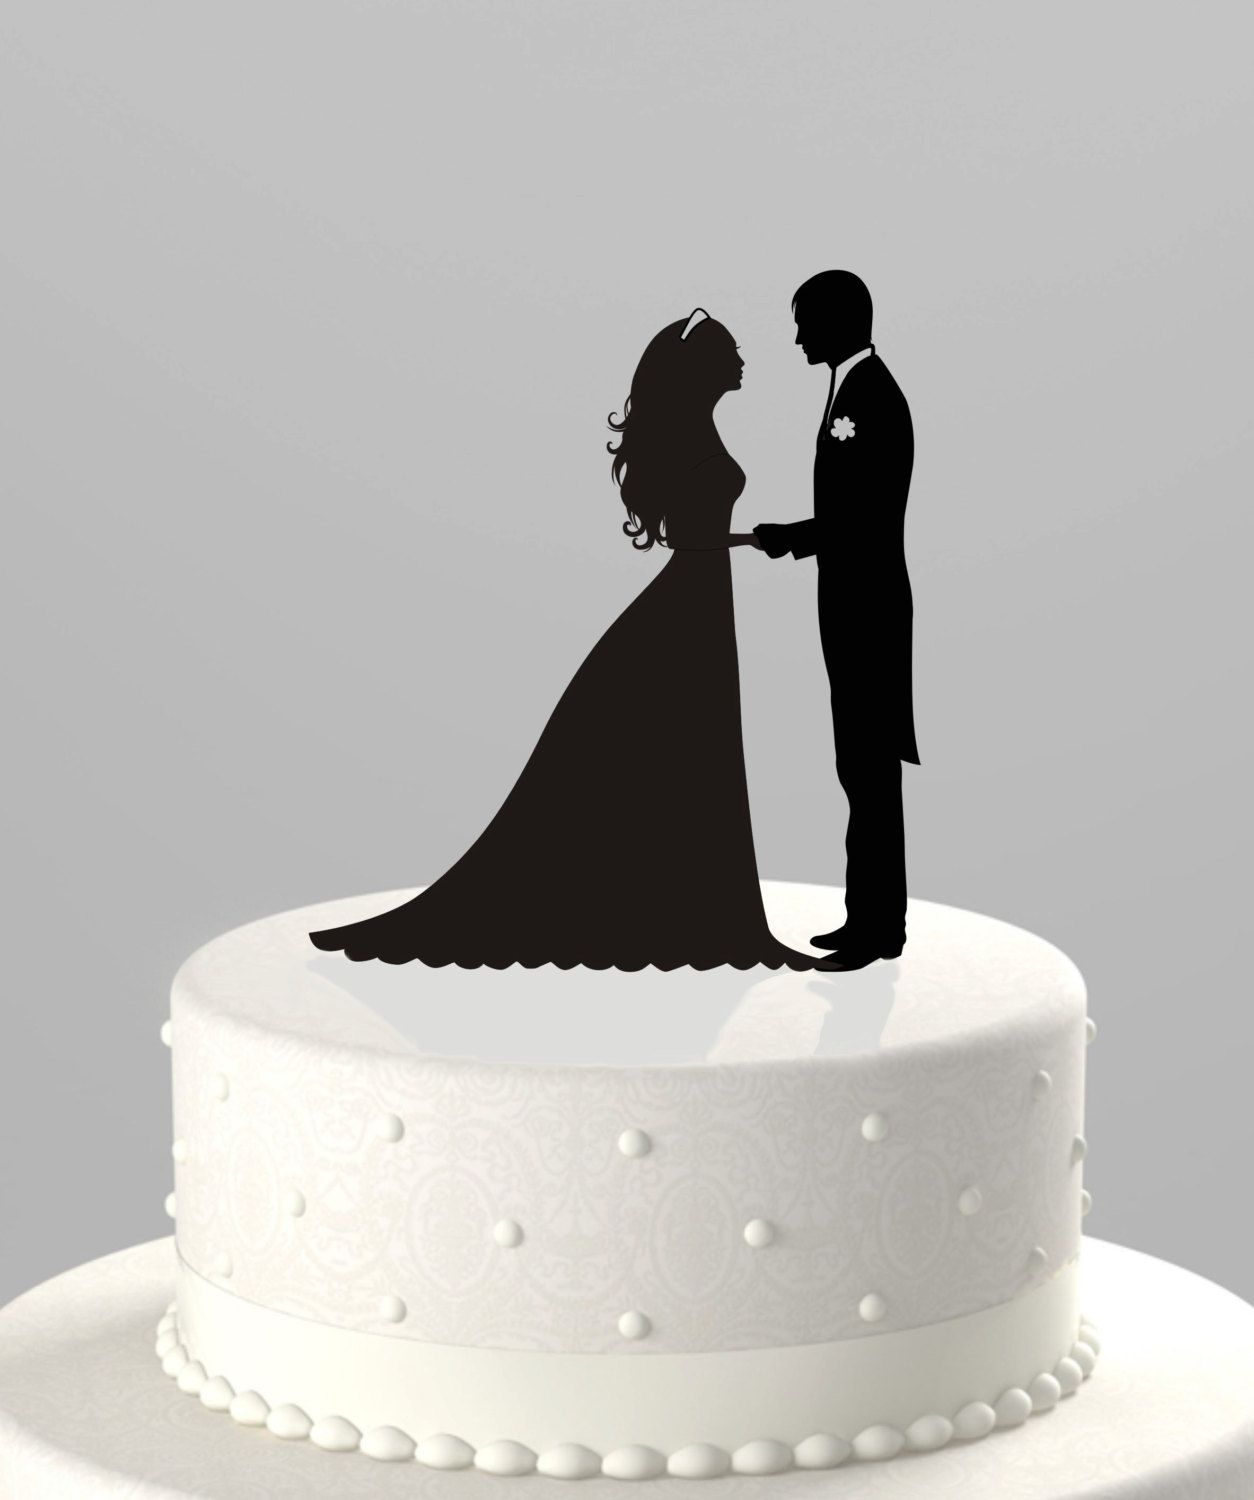 Black Bride And Groom Cake Toppers Popular Items For Acrylic Topper On Etsy Pictures